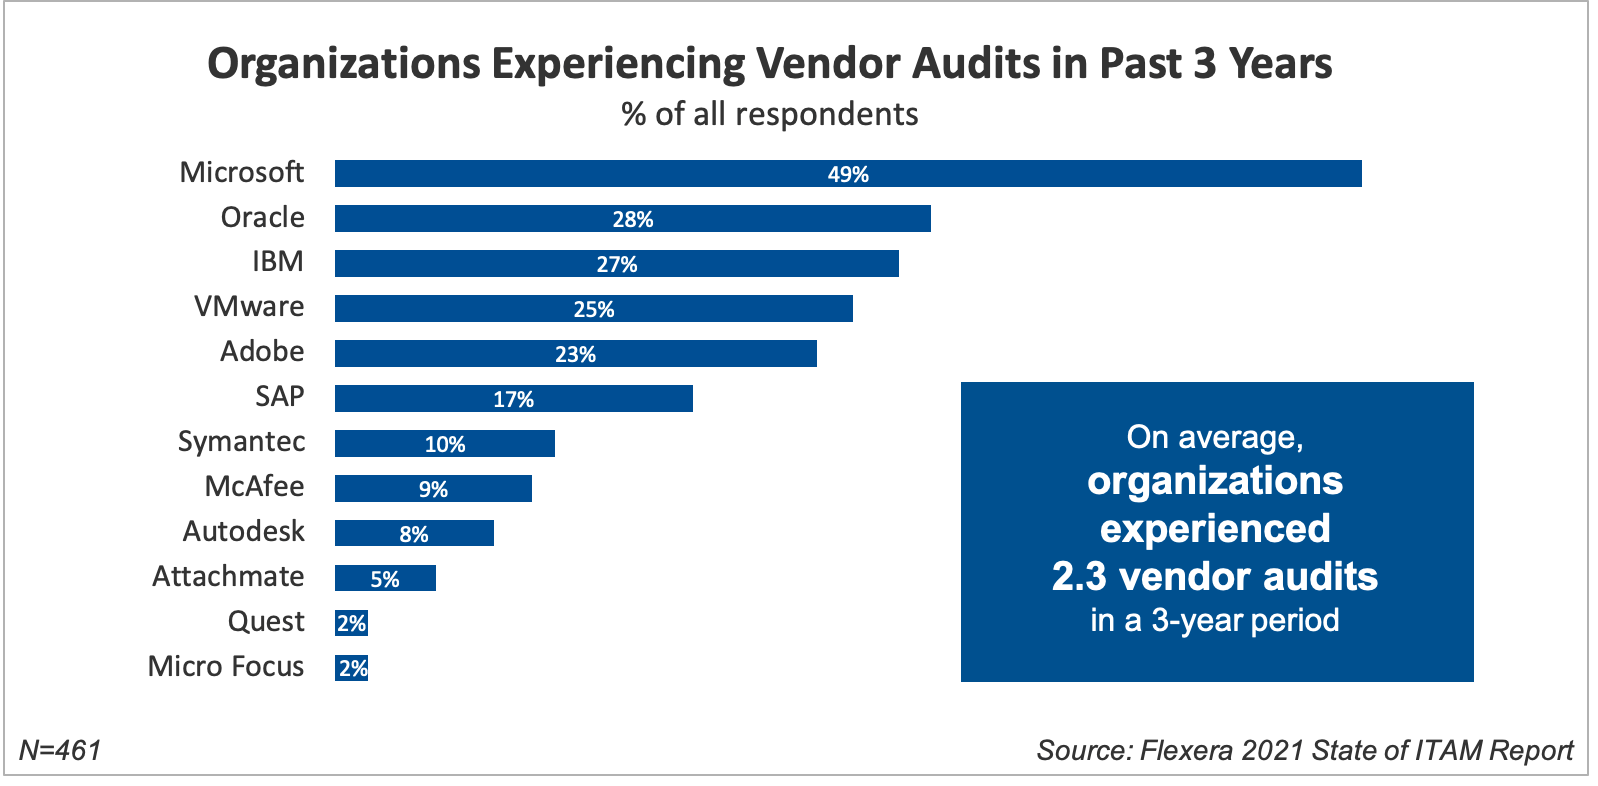 Organizations Experiencing Vendor Audits in Past 3 Years